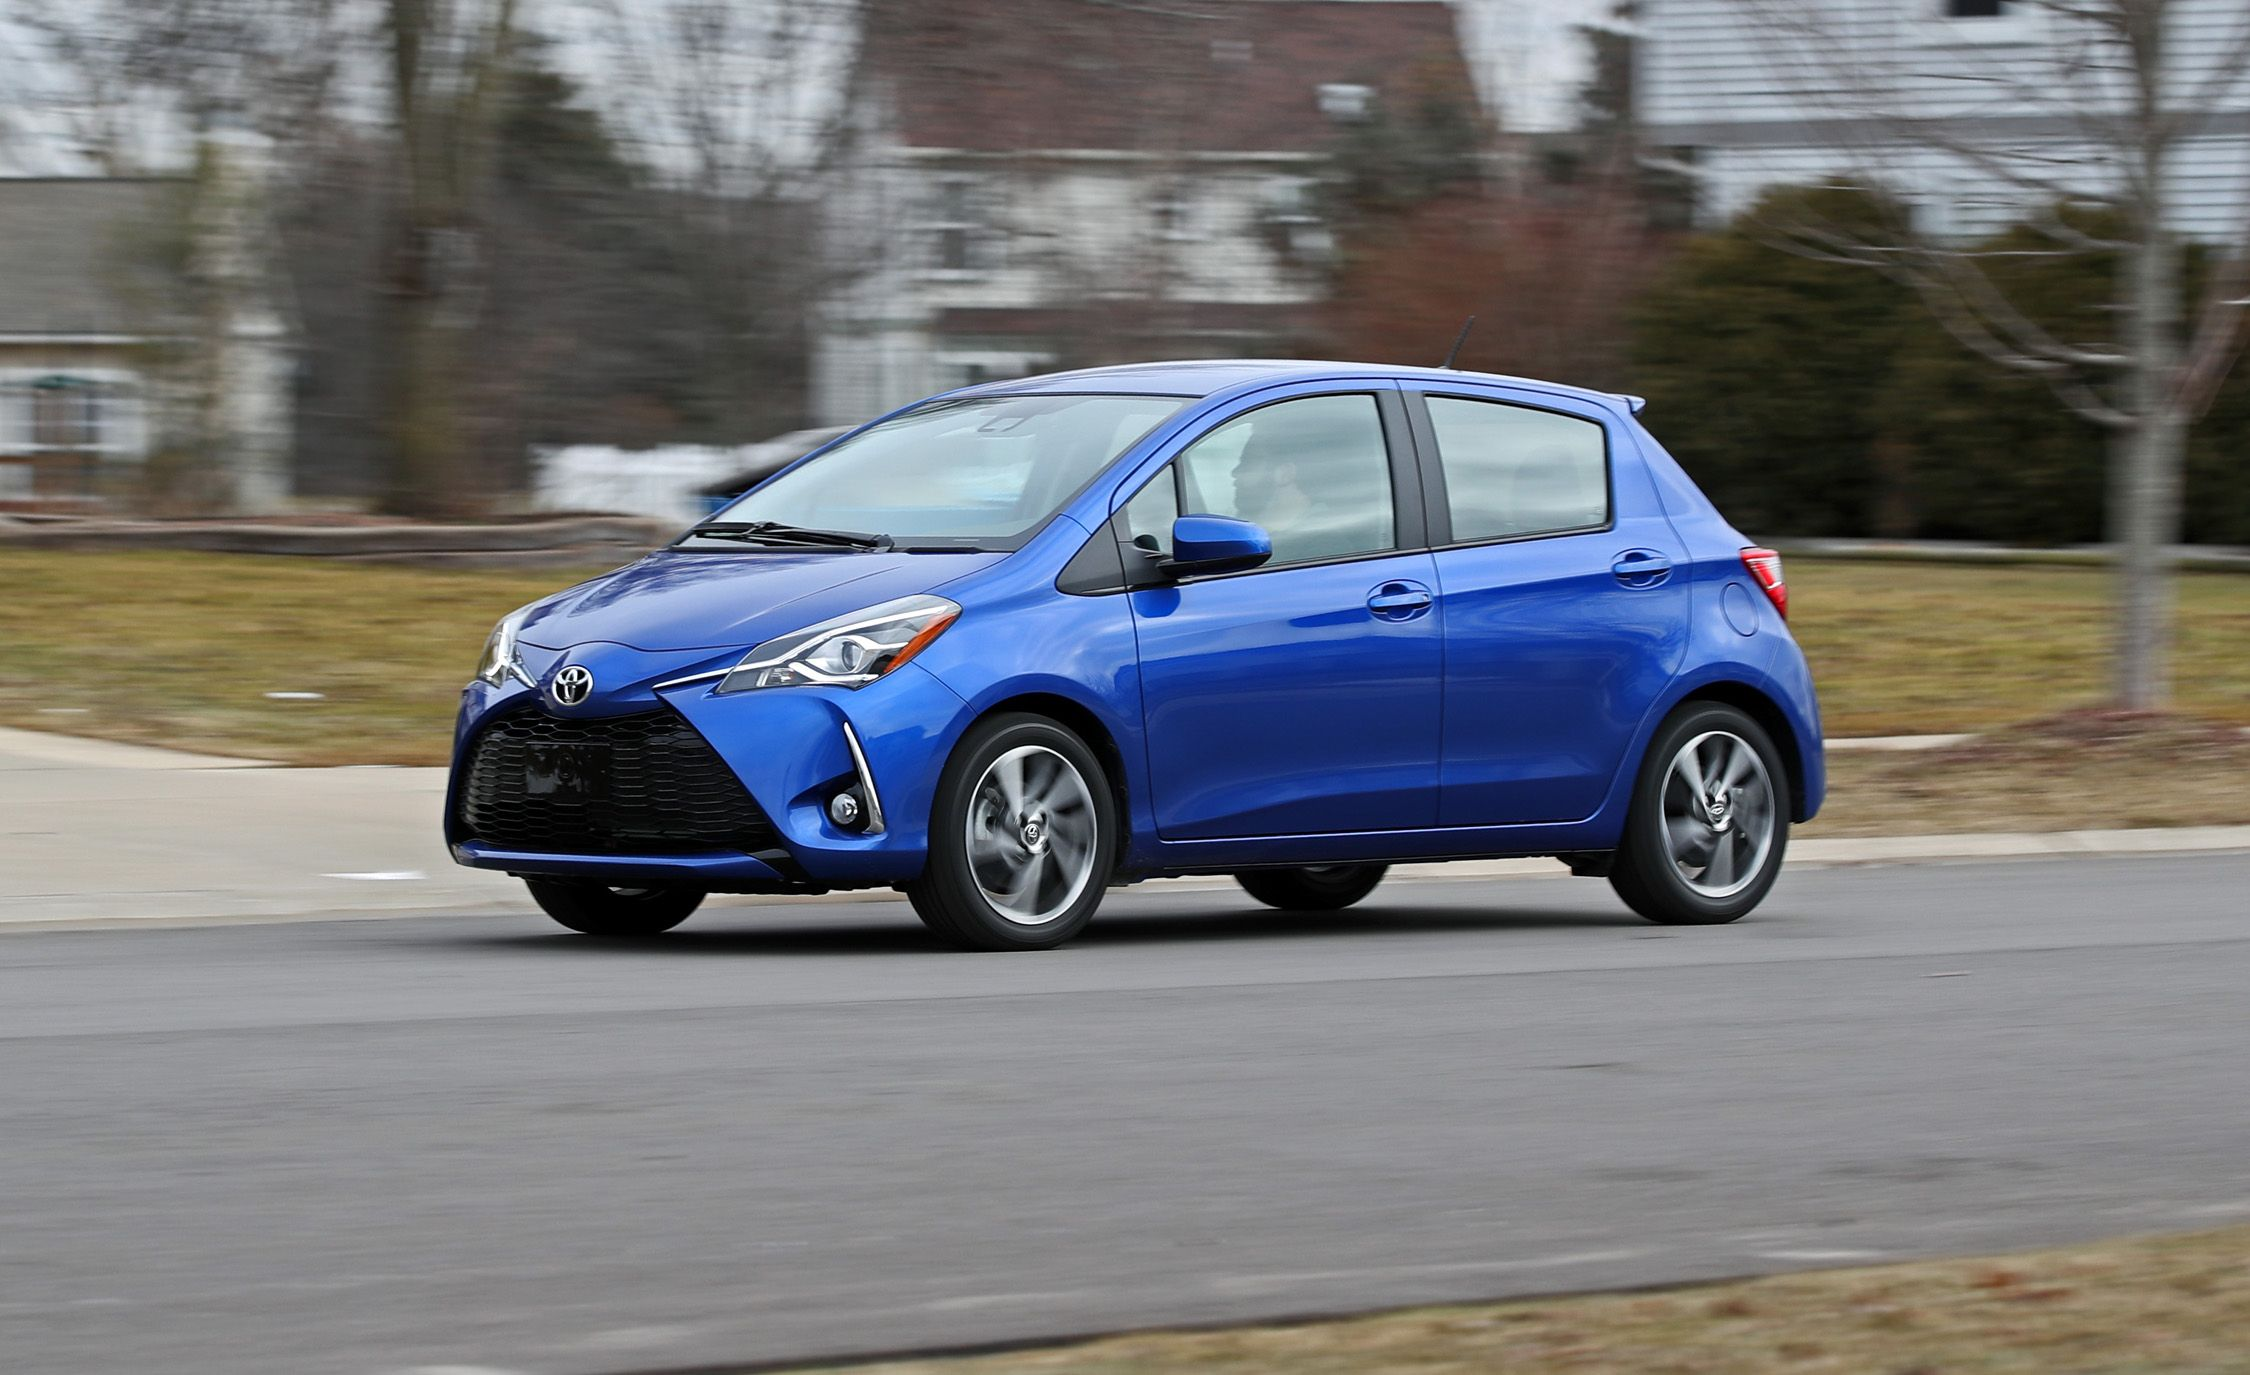 2019 Toyota Yaris Reviews | Toyota Yaris Price, Photos, and Specs | Car and  Driver